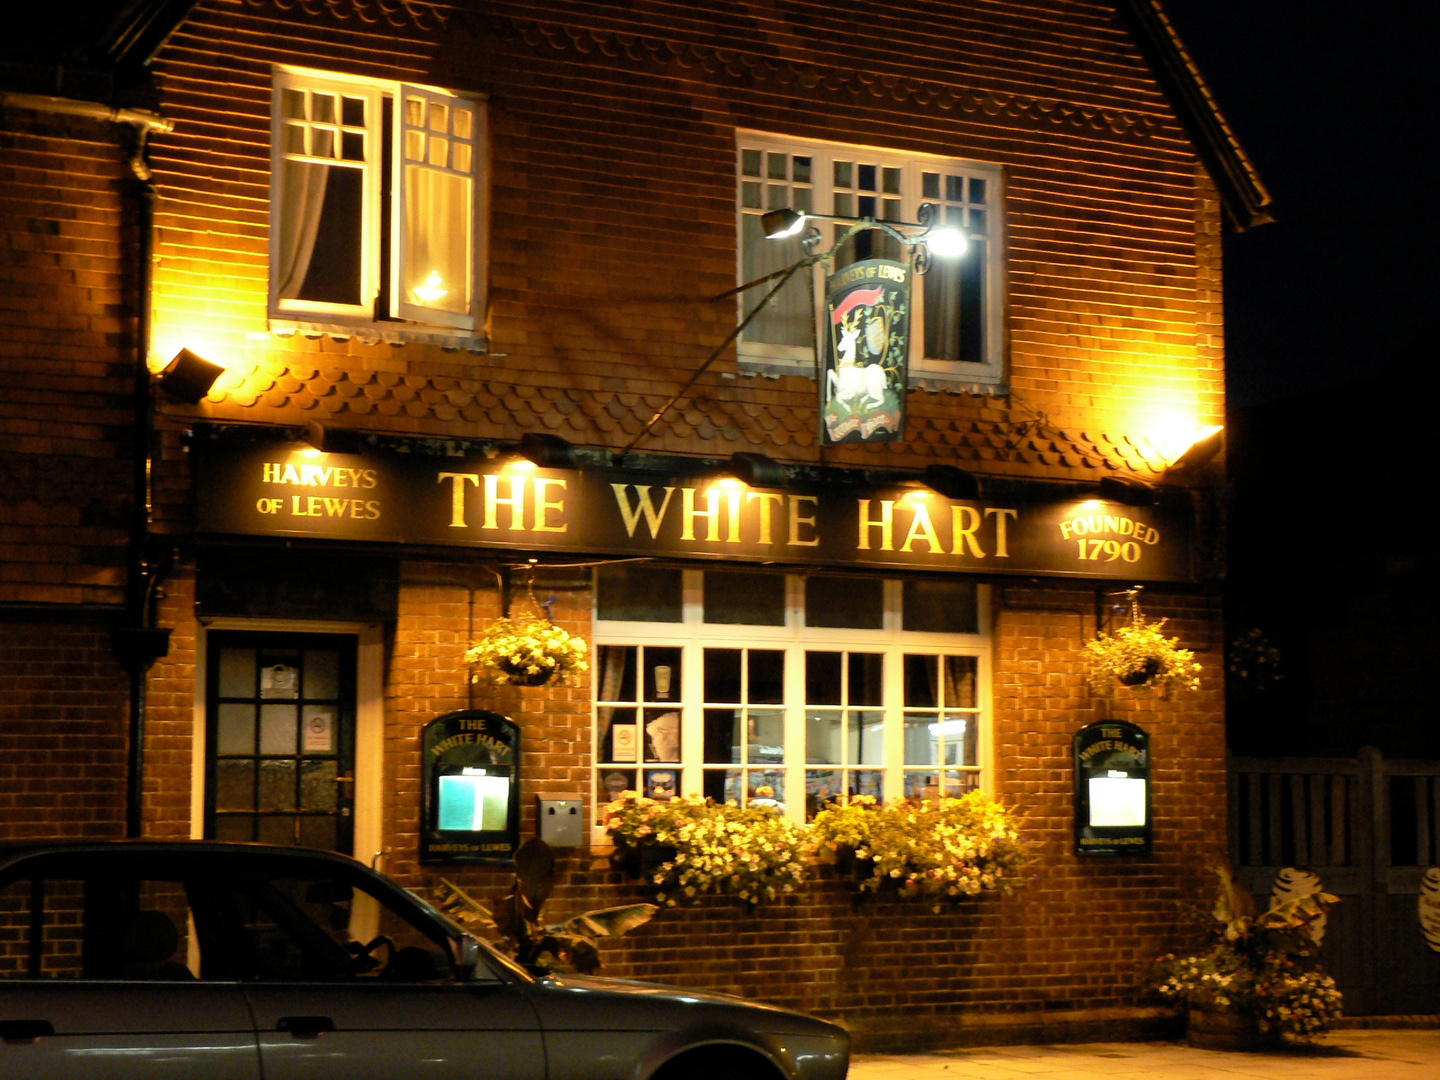 The White Hart, founded 1790